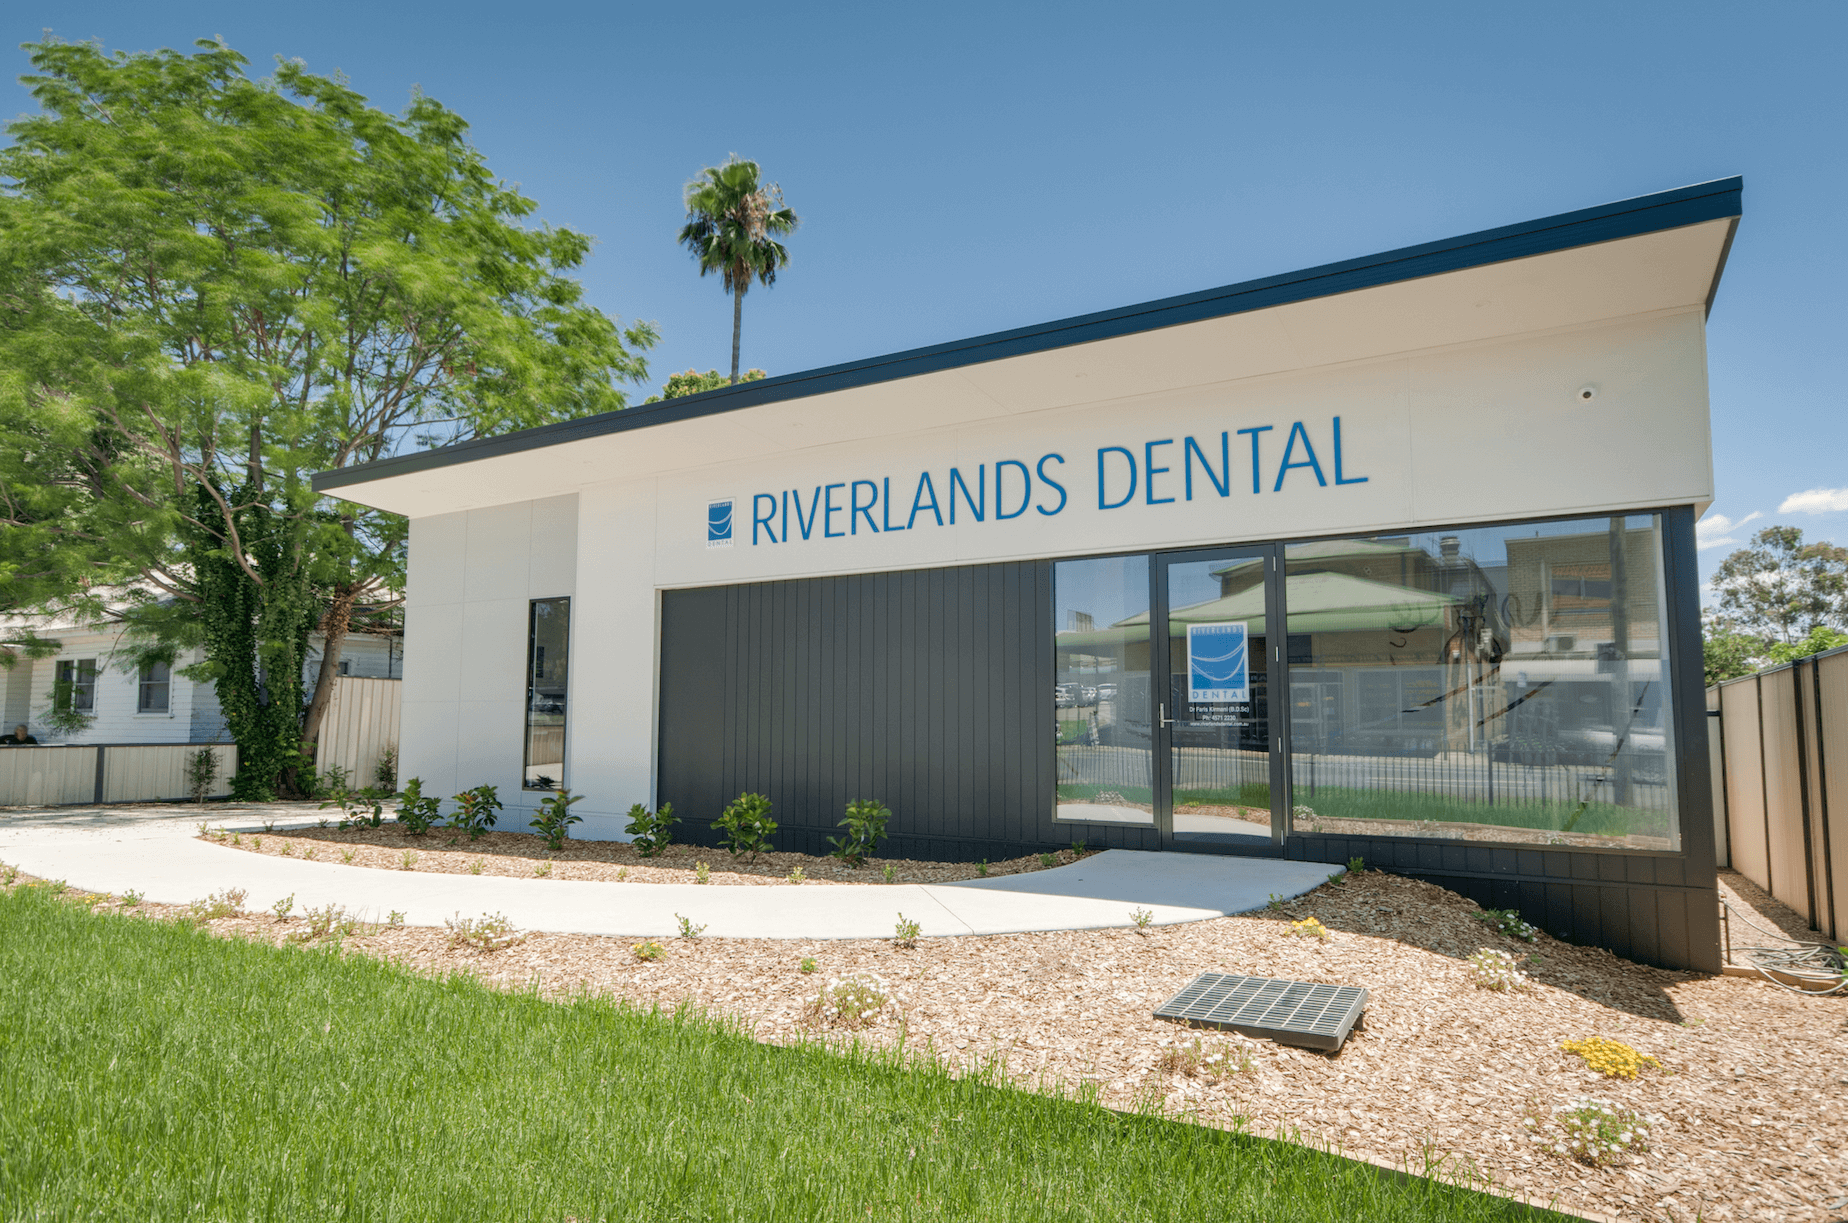 To Renovate Or Build New with Your Dental or Medical Practice?